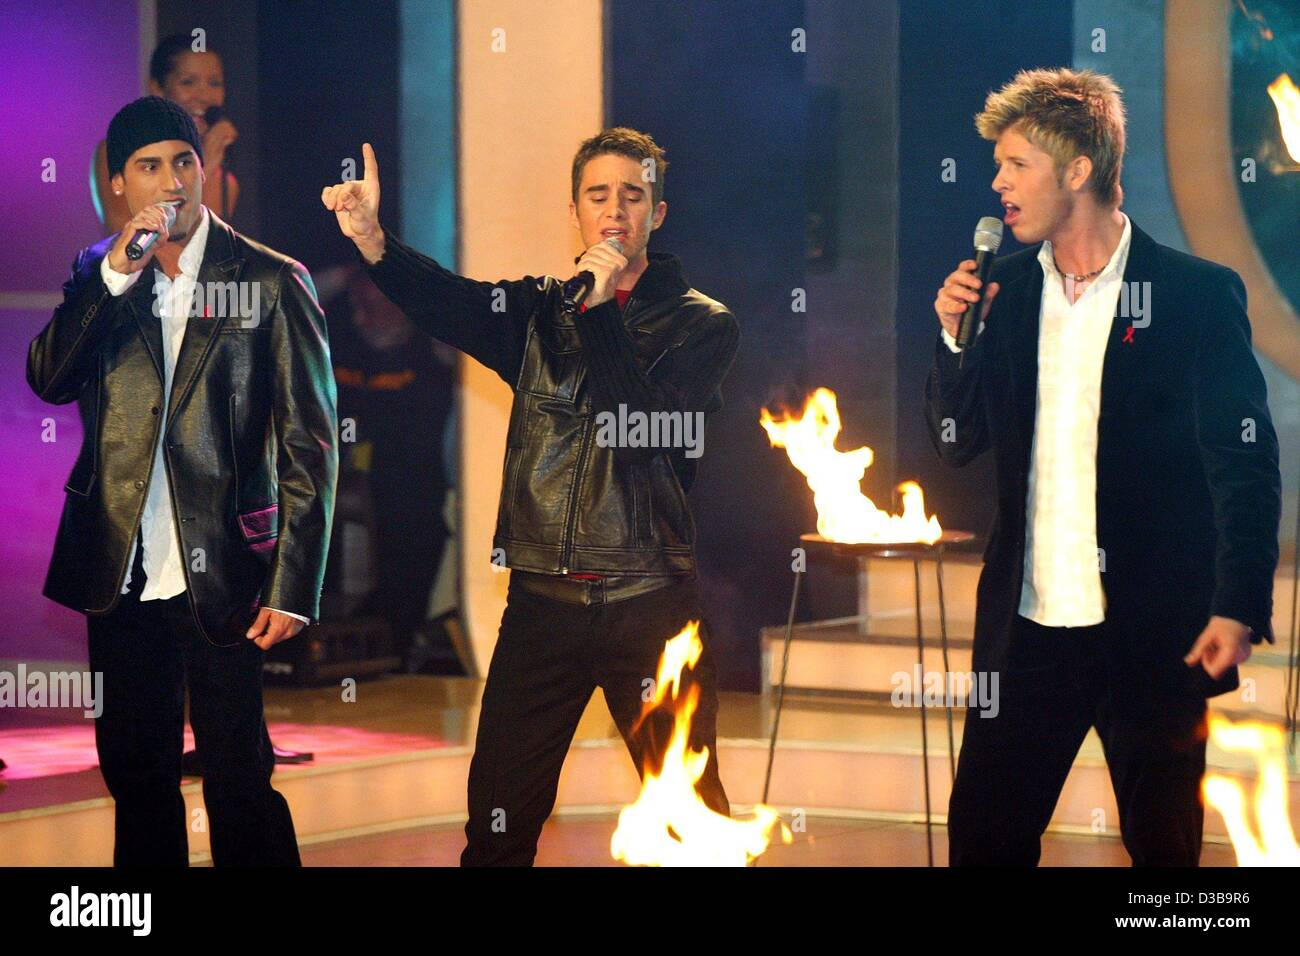 (dpa) - The members of the boygroup B3 sing during a dress rehearsal of the Aids gala 'Stars 2002' in Berlin, - Stock Image